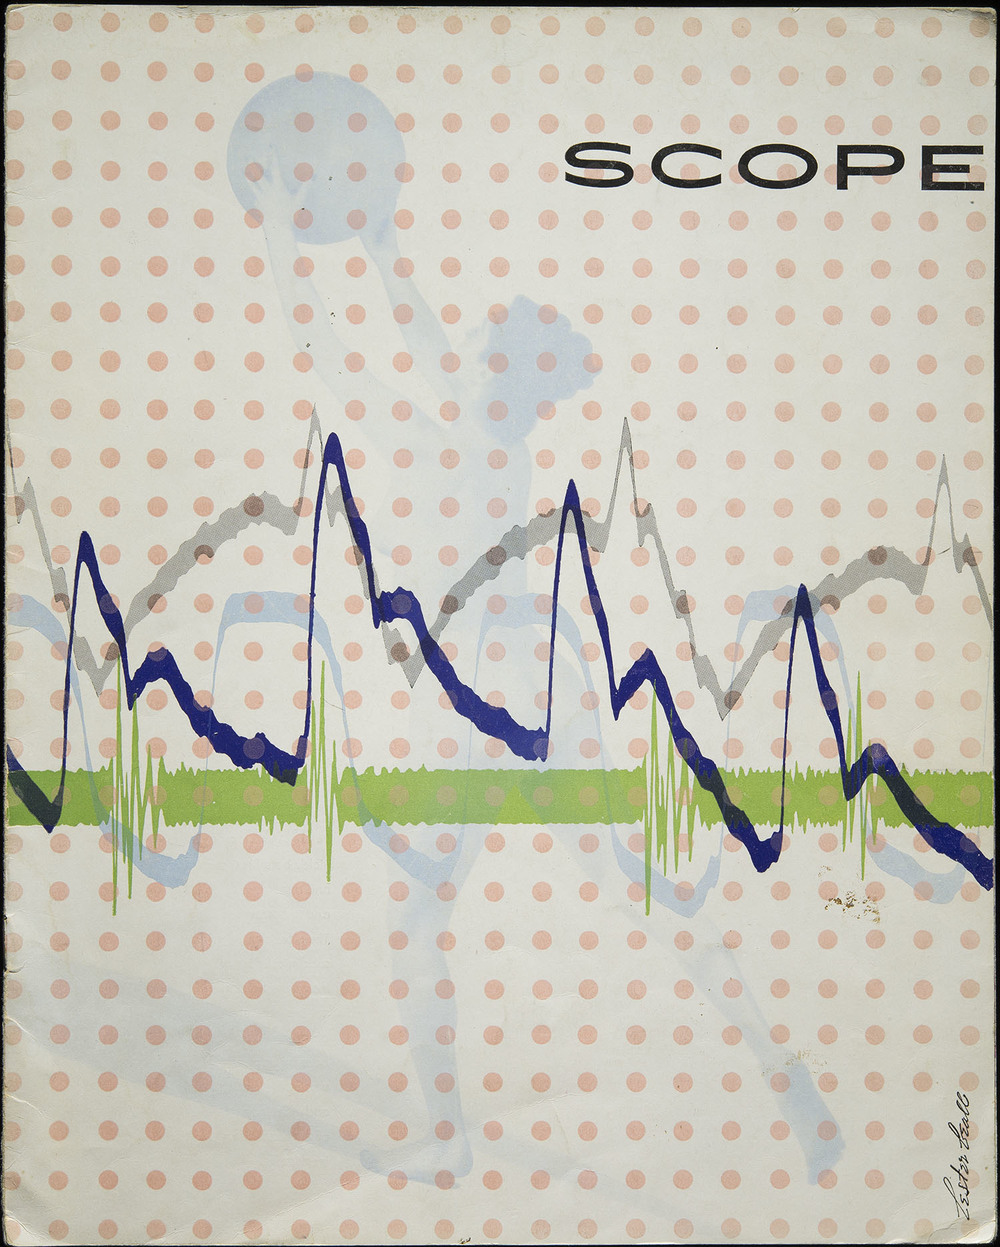 Lester Beall,  Scope  magazine, The Upjohn Company, Kalamazoo, 1948, 23 x 28.8 cm